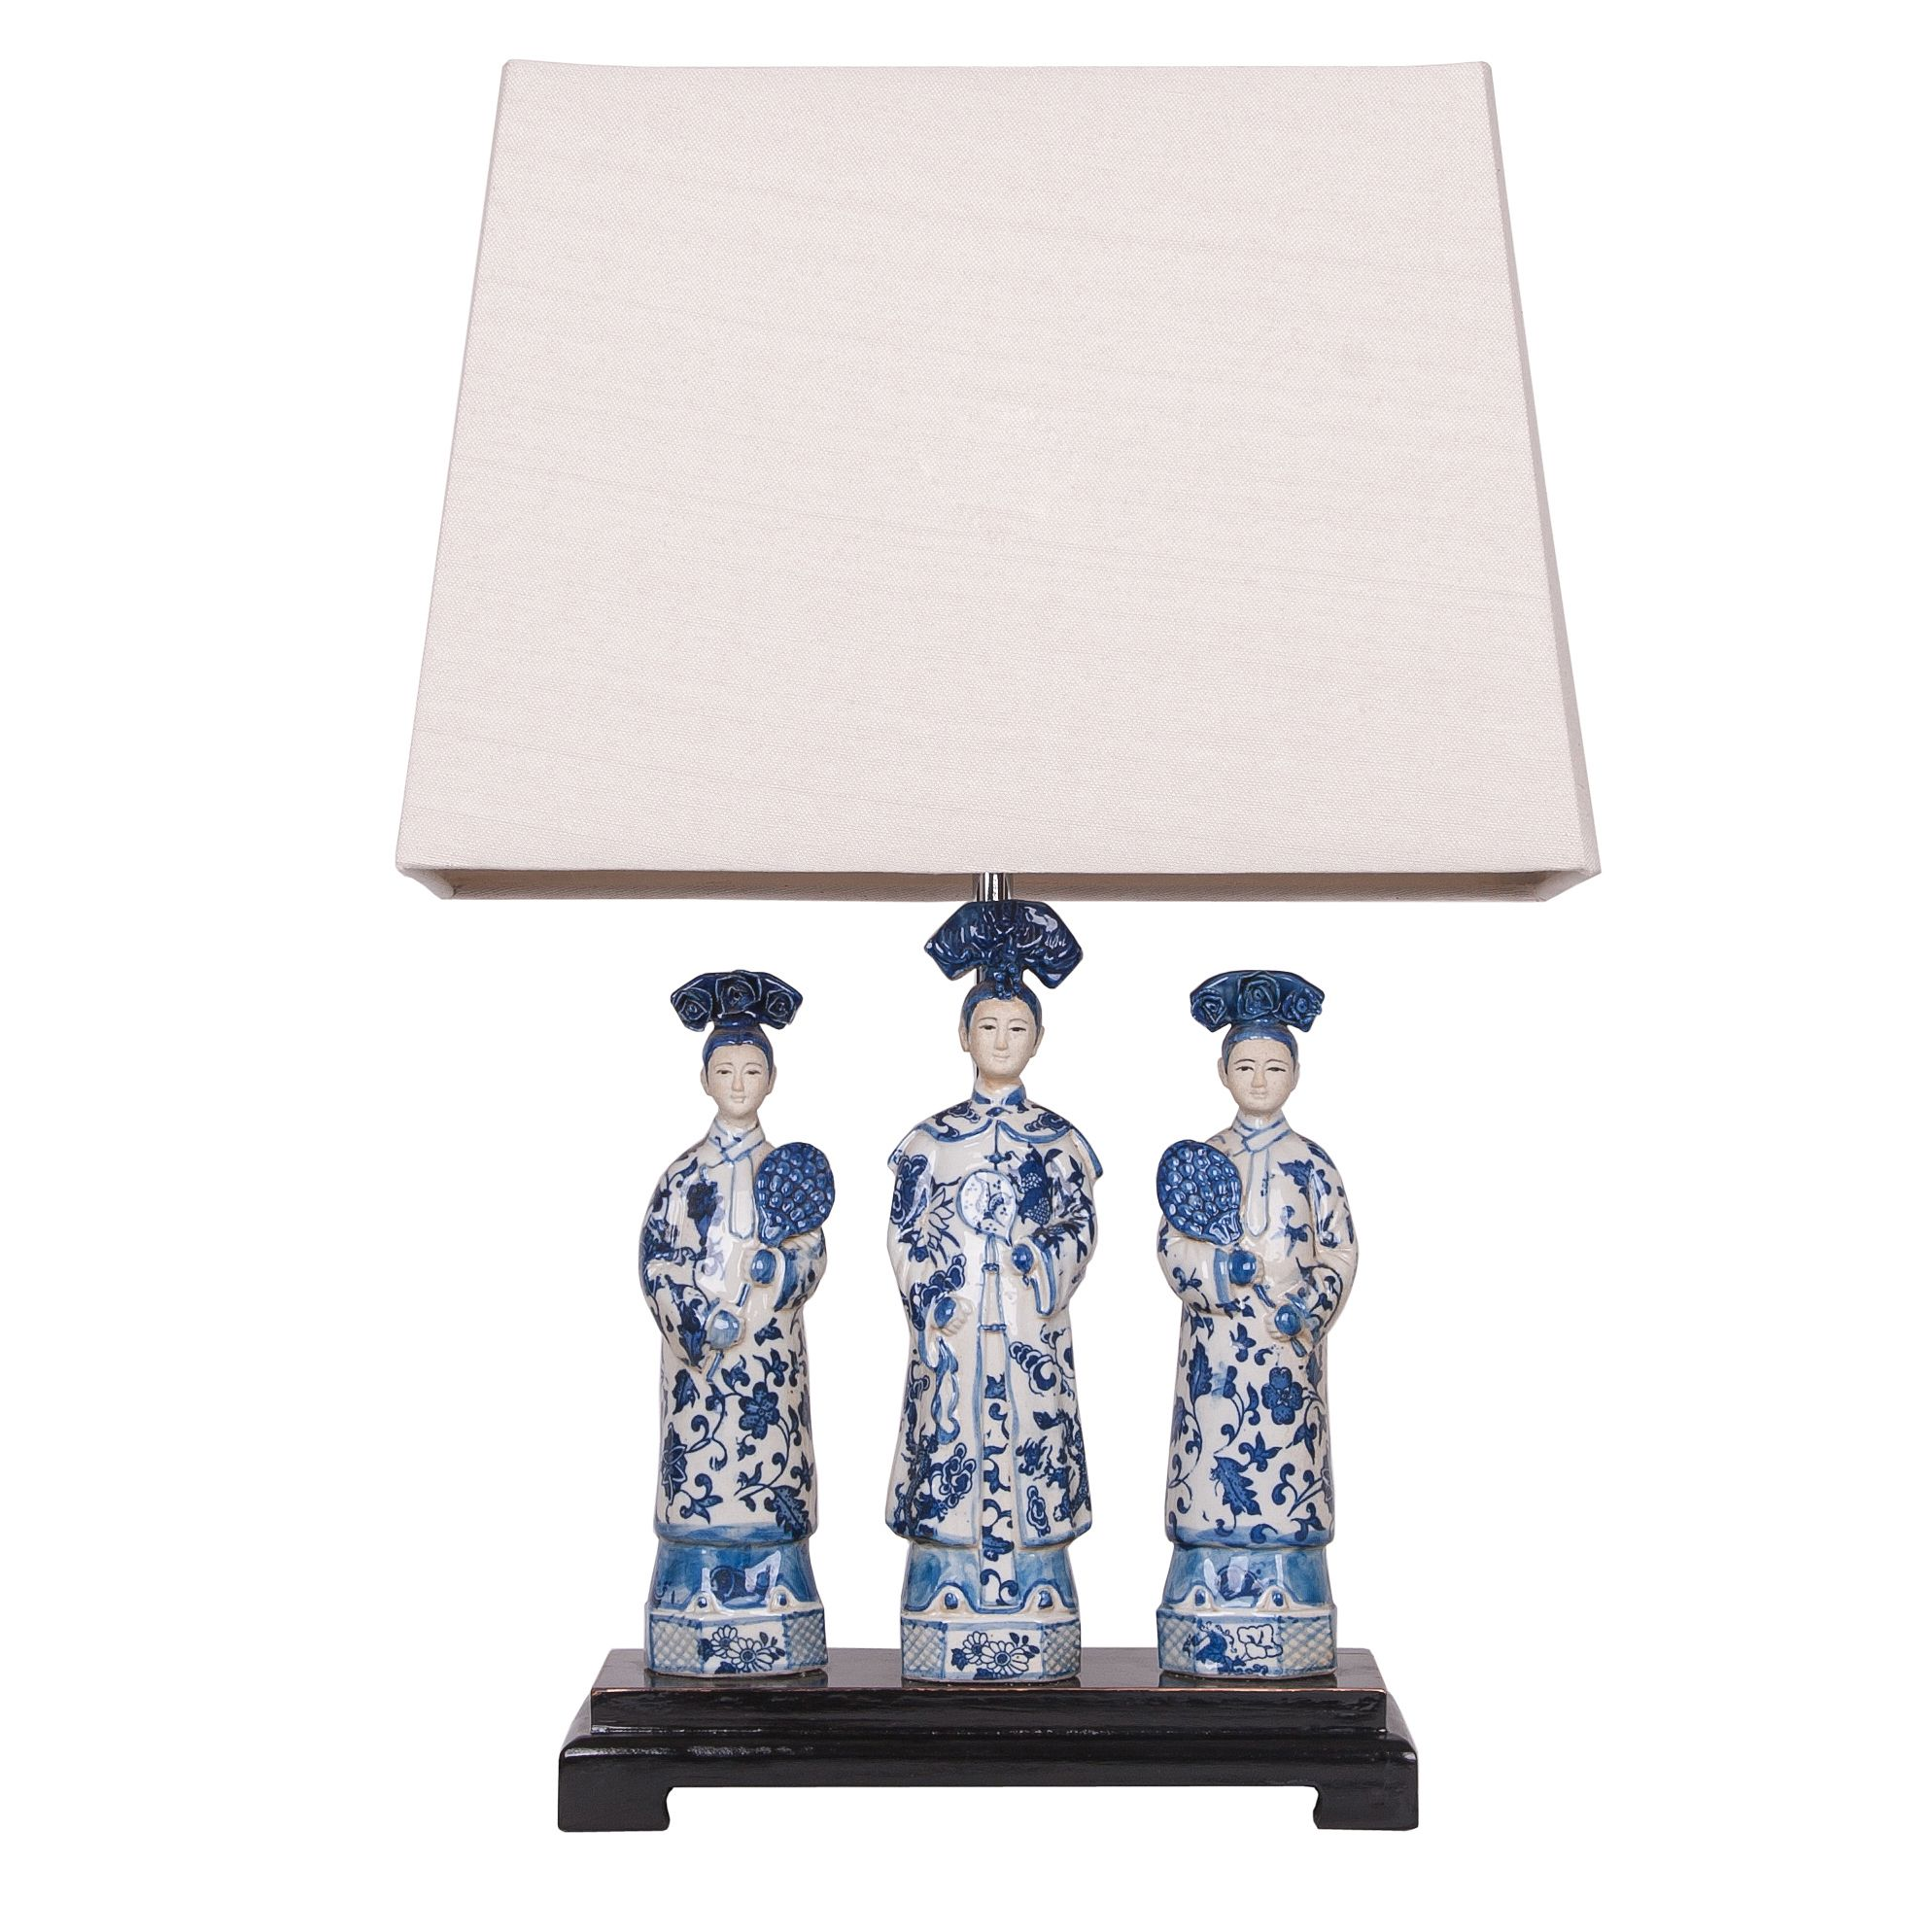 Add some culture and diversity to any space with this Oriental Queens Ceramic Lamp With Wood Base. This lamp is sure to become the focal point of any modern space.